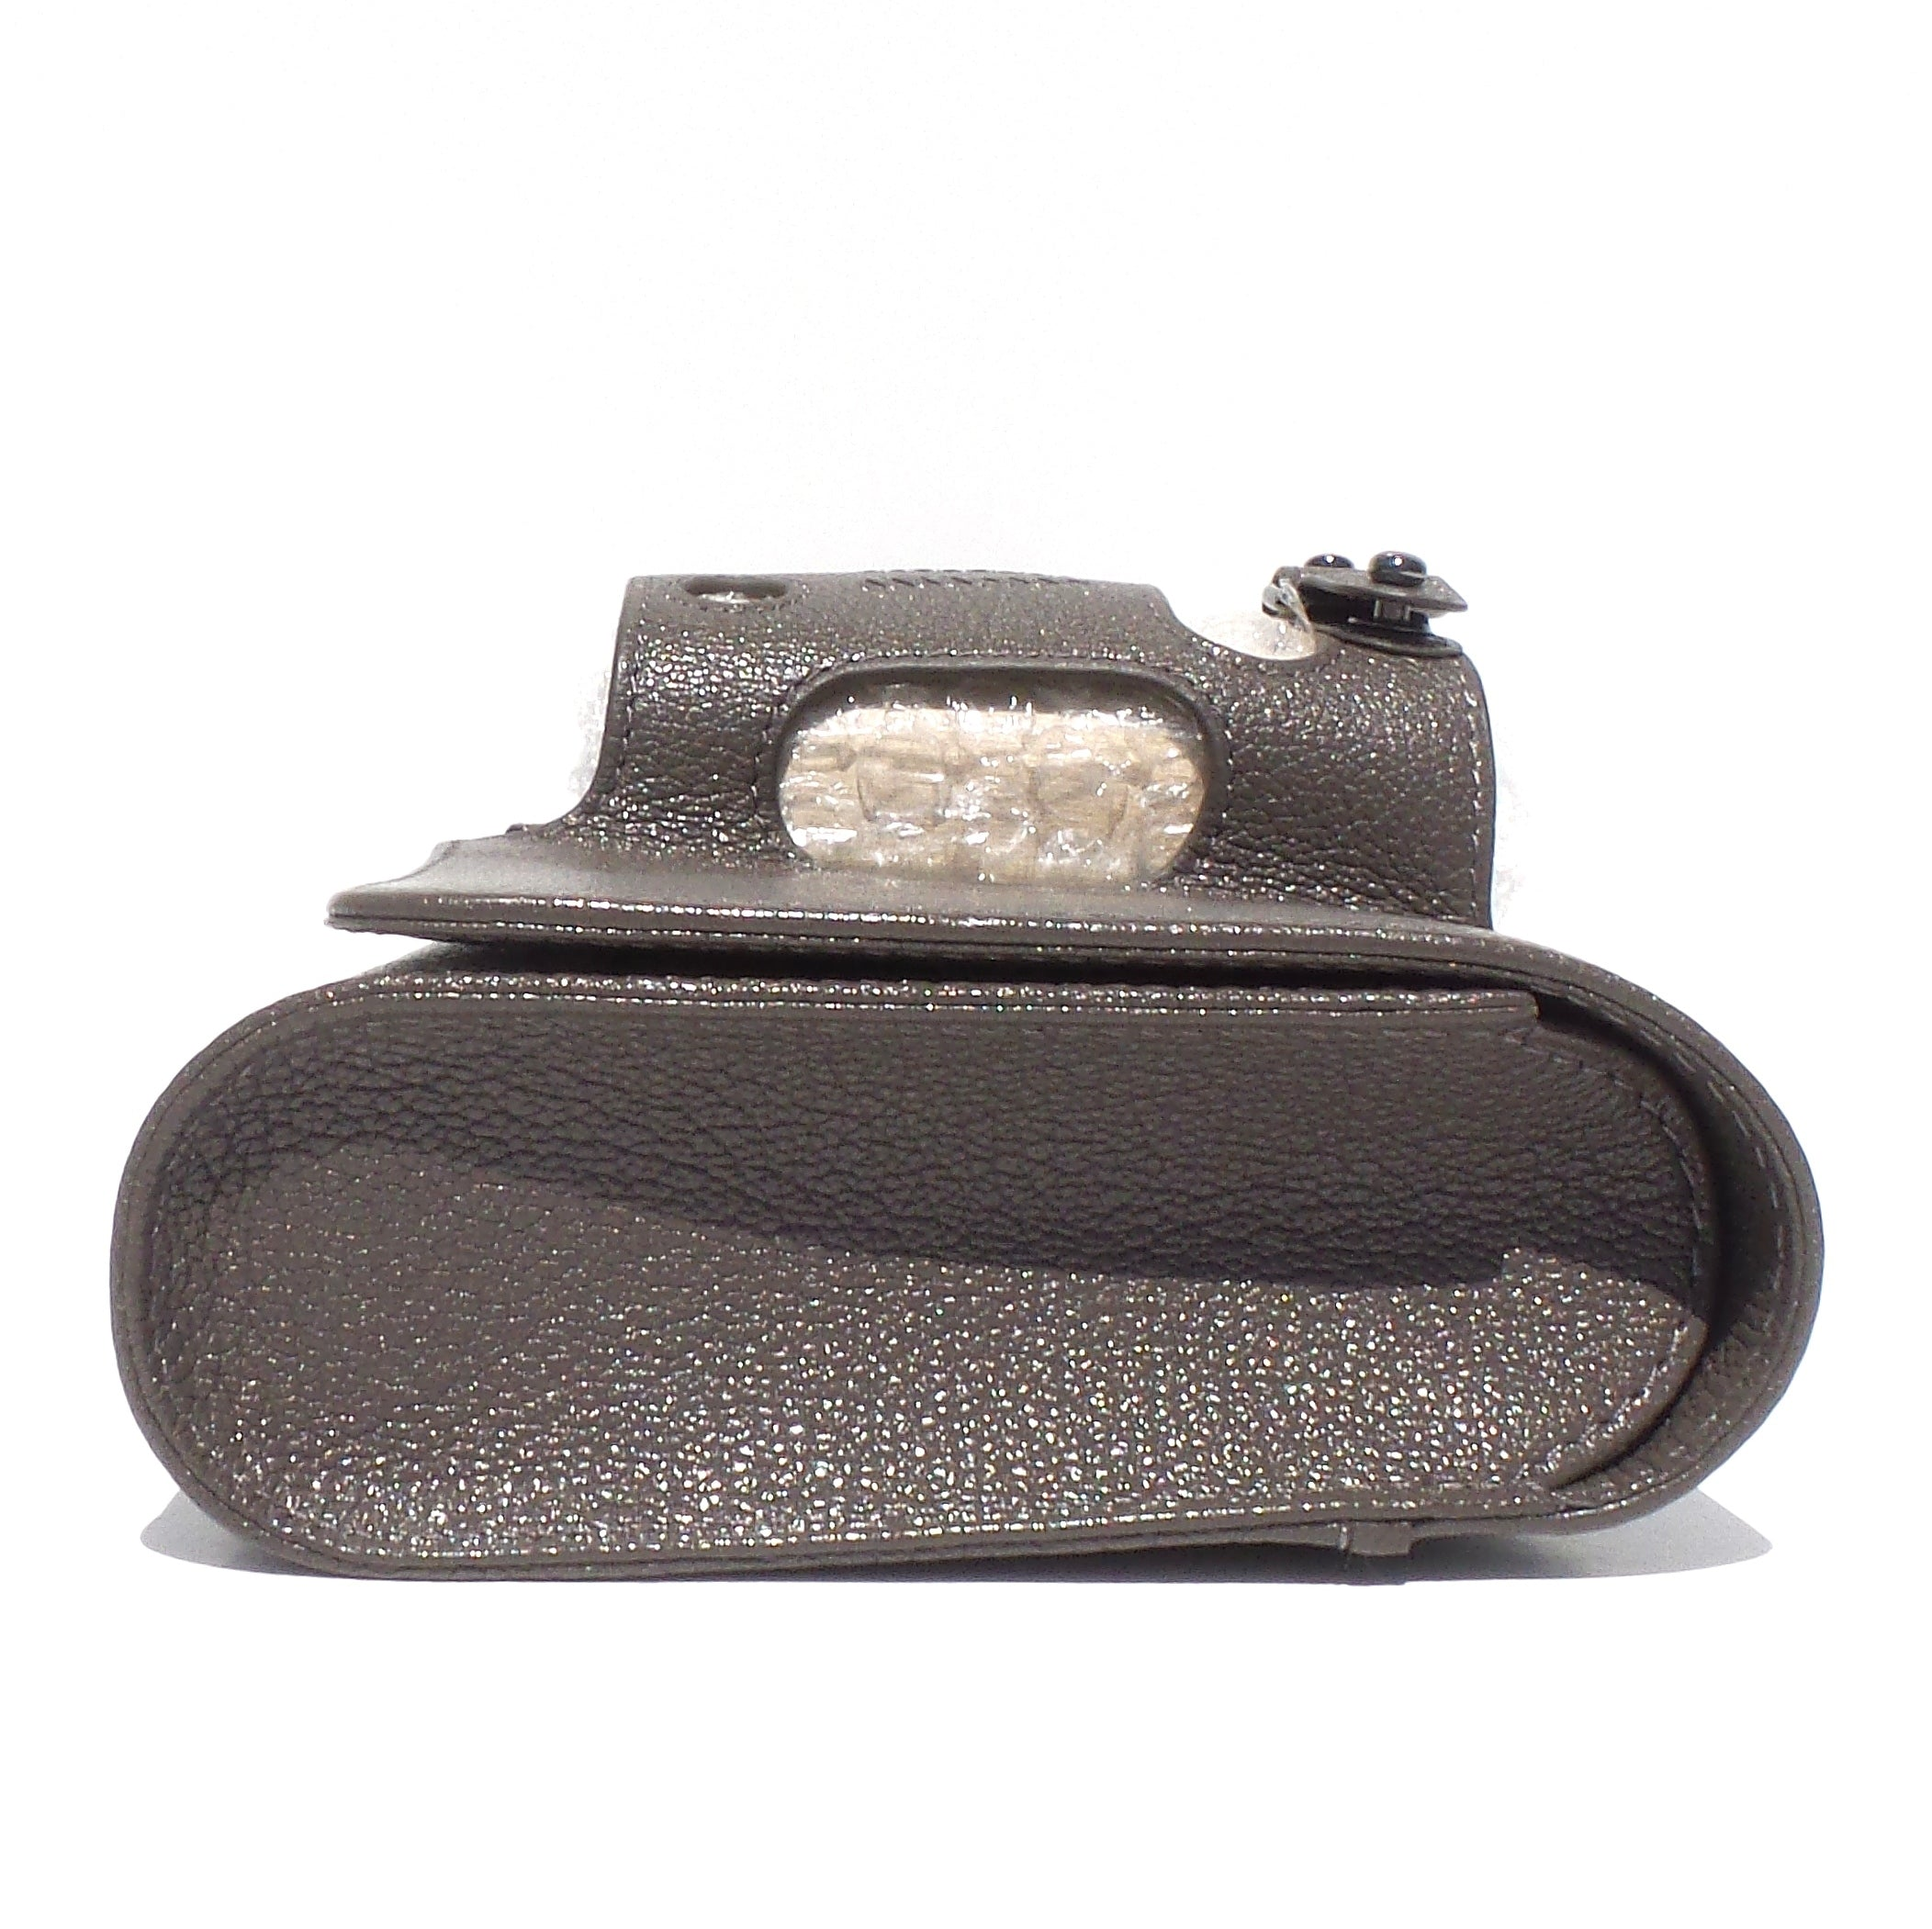 PERRIN Paris Le Cabriolet Rhino Gray Taupe Goat Leather SHW Glove Clutch $995